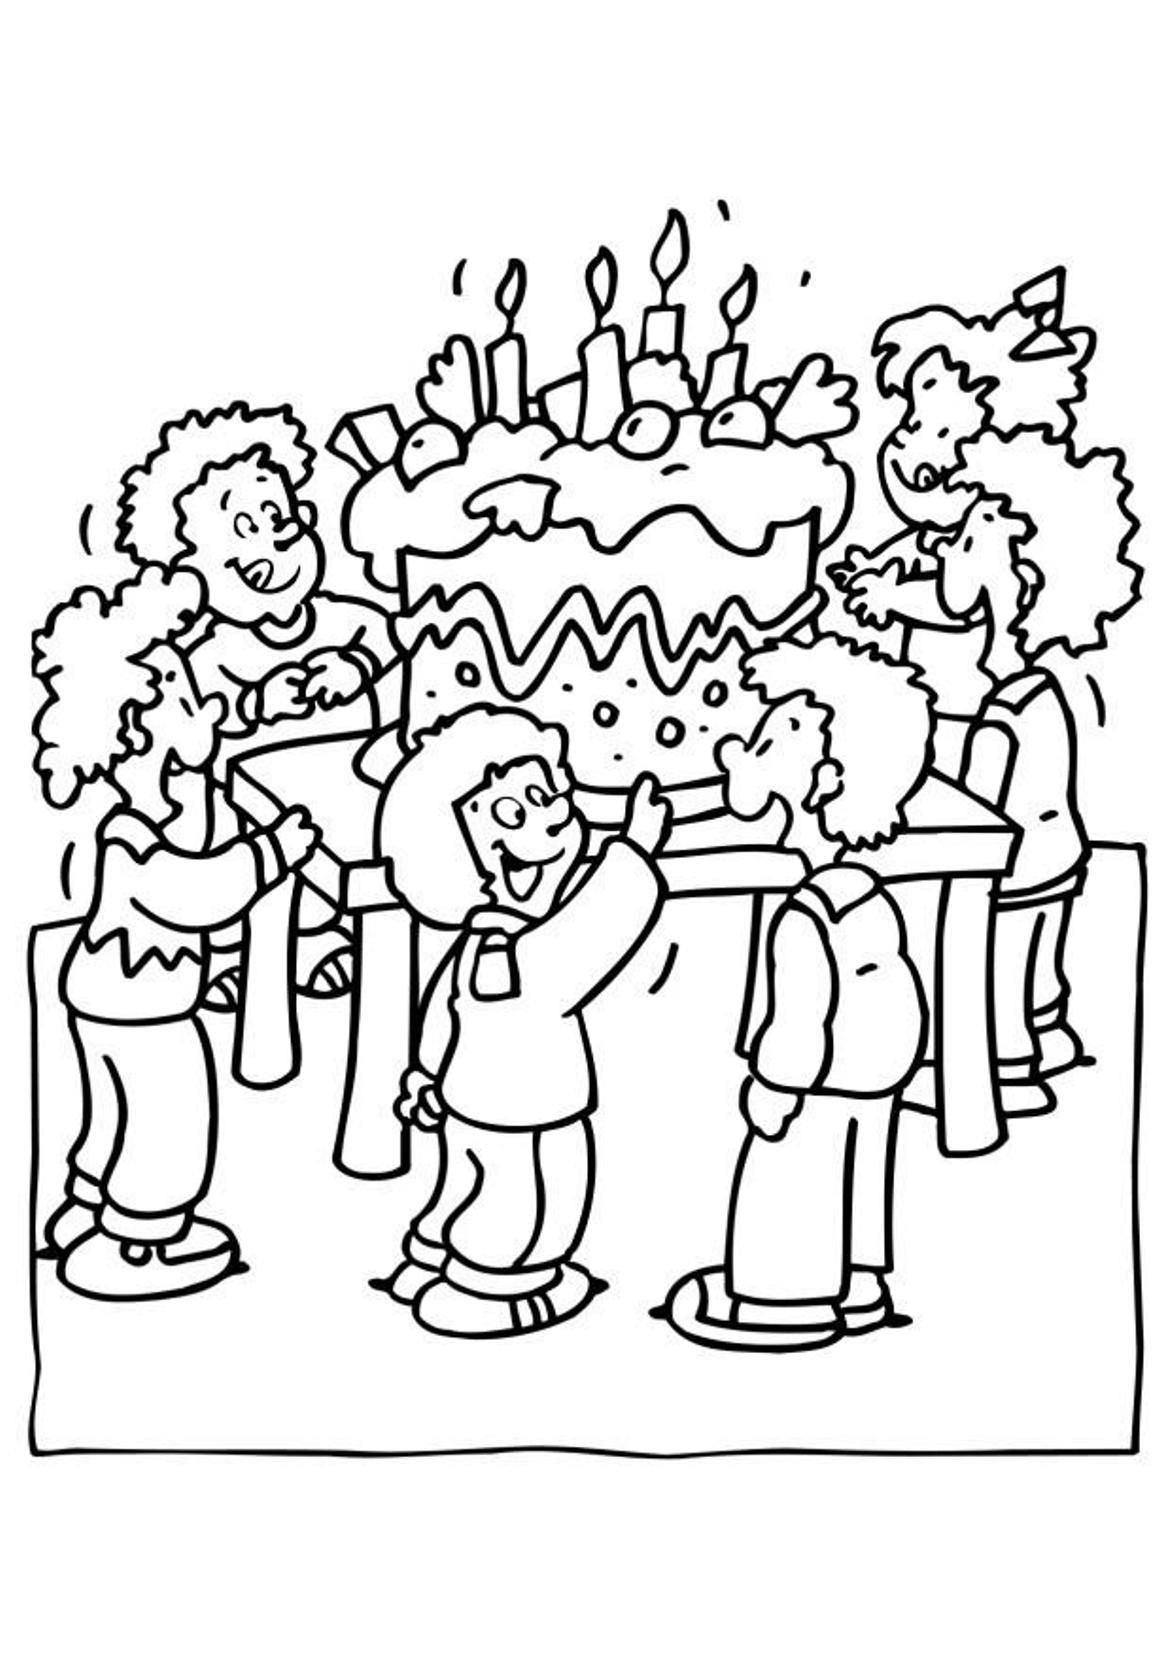 My little pony birthday party coloring pages - Party Birthday Coloring Pages For Kids Birthday Coloring Pages